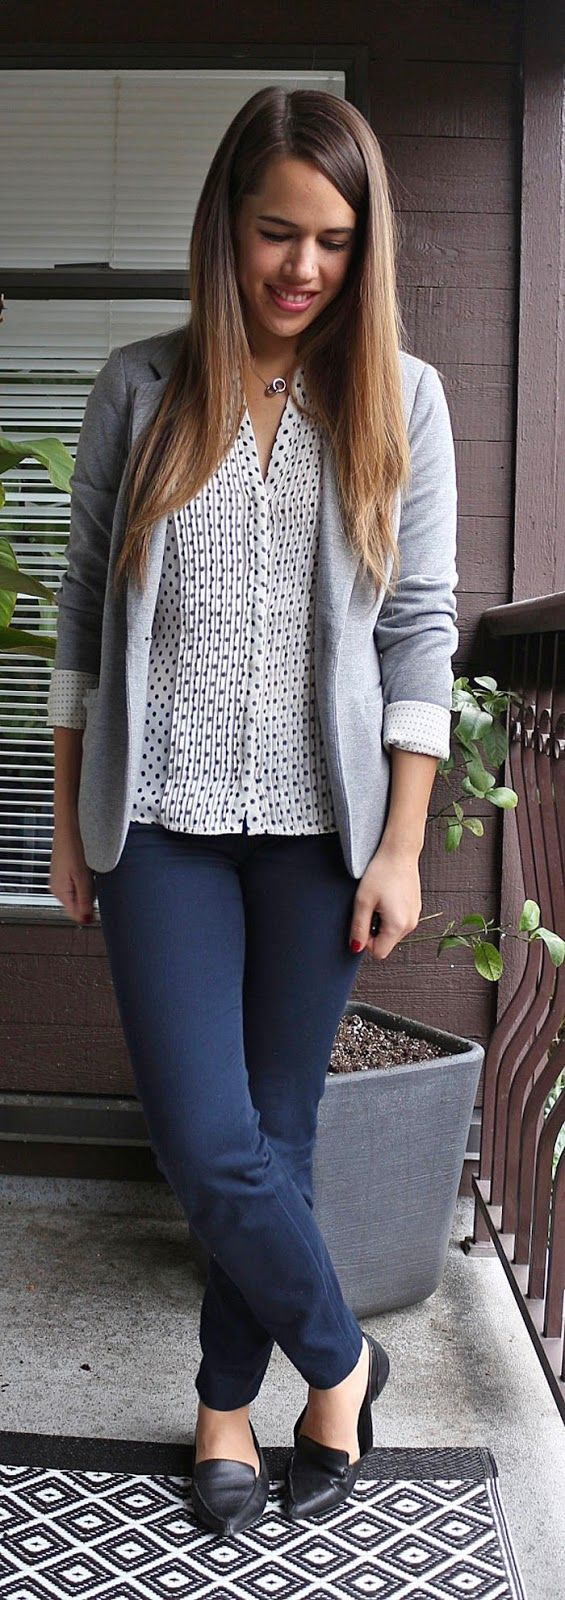 Black t shirt navy pants - 23 Comfy Chic Work Outfits With Flats For Happy Feet